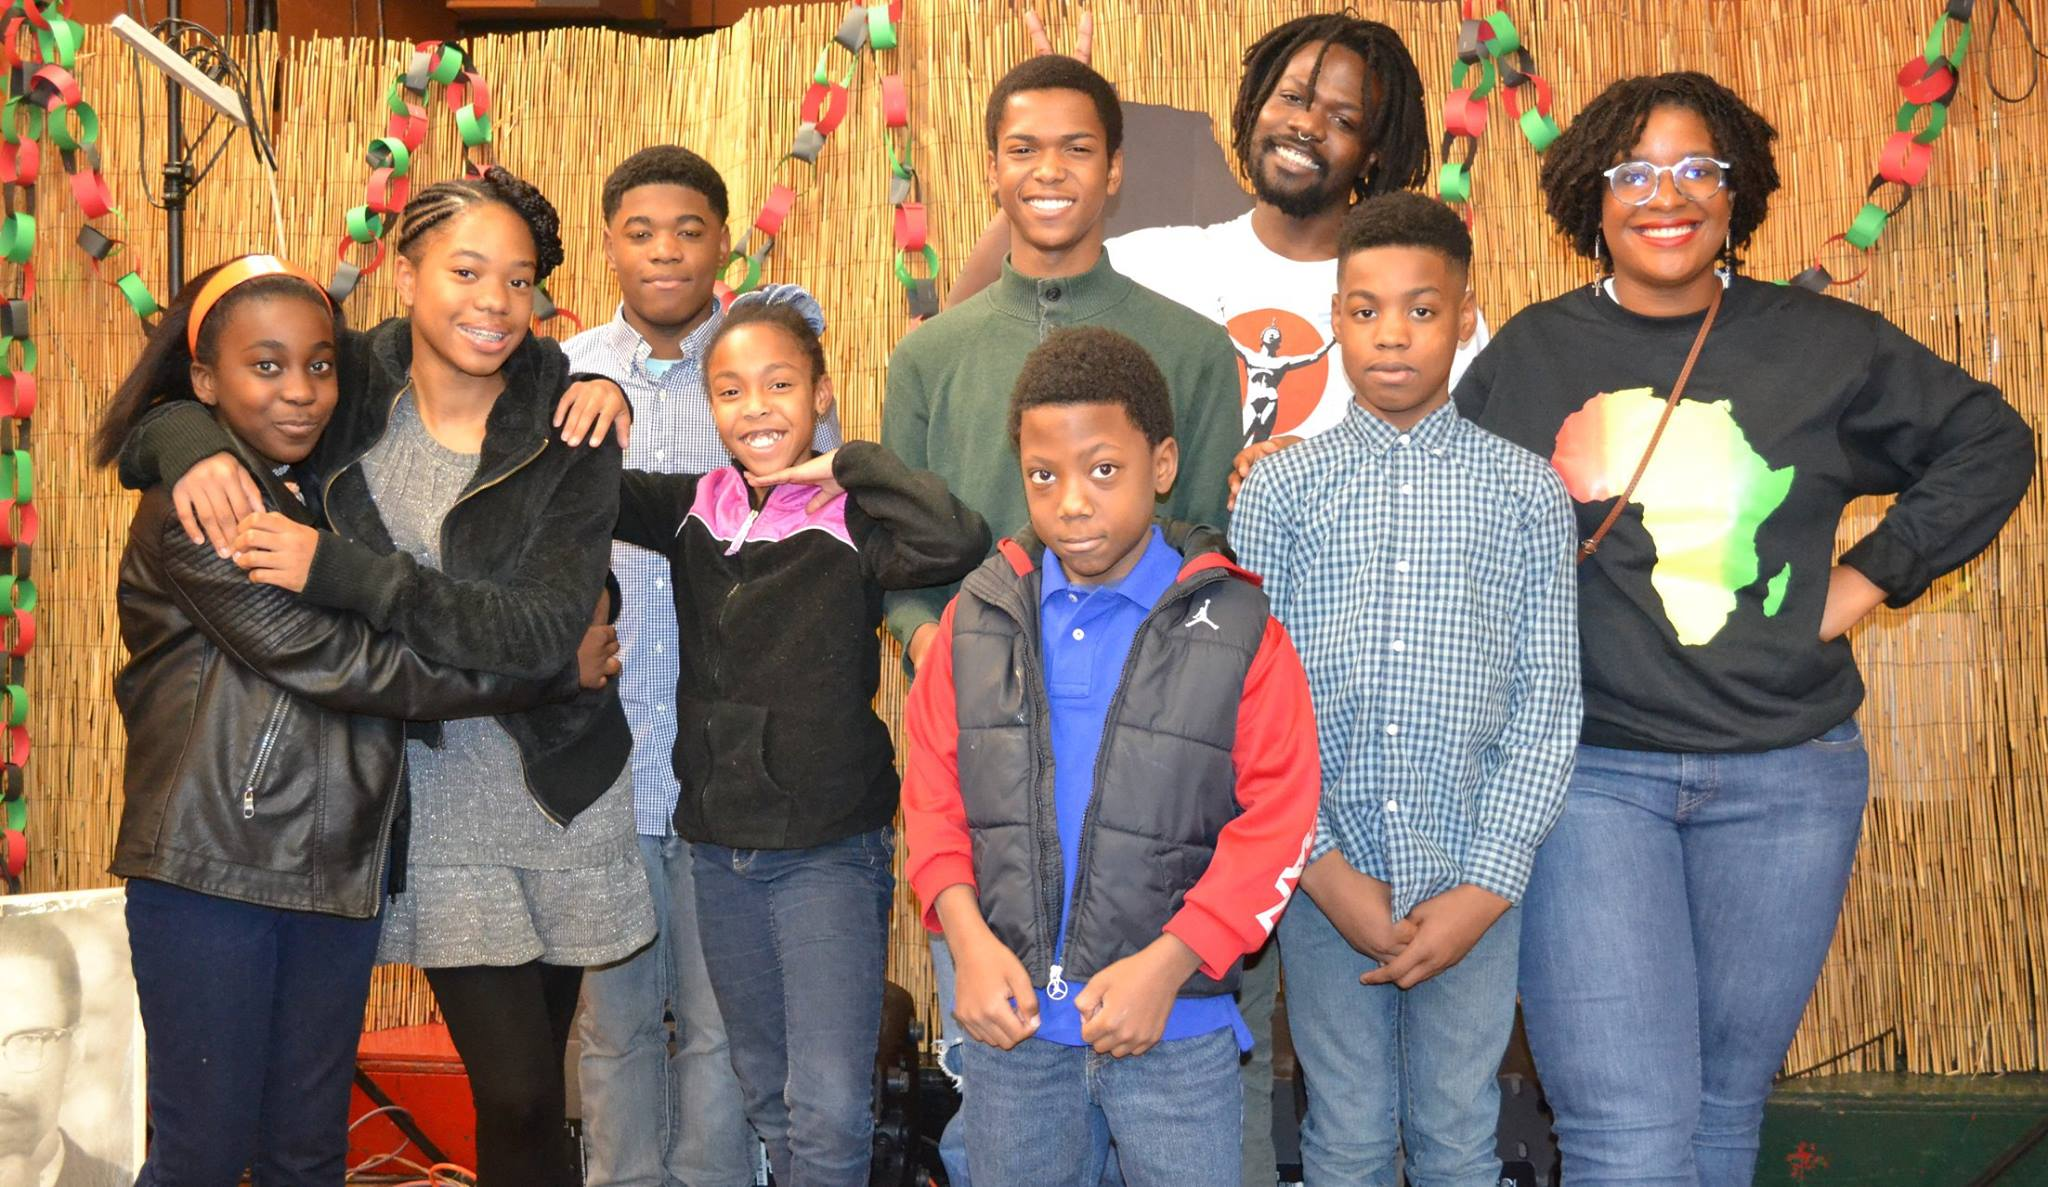 Adults and children celebrating Kwanzaa